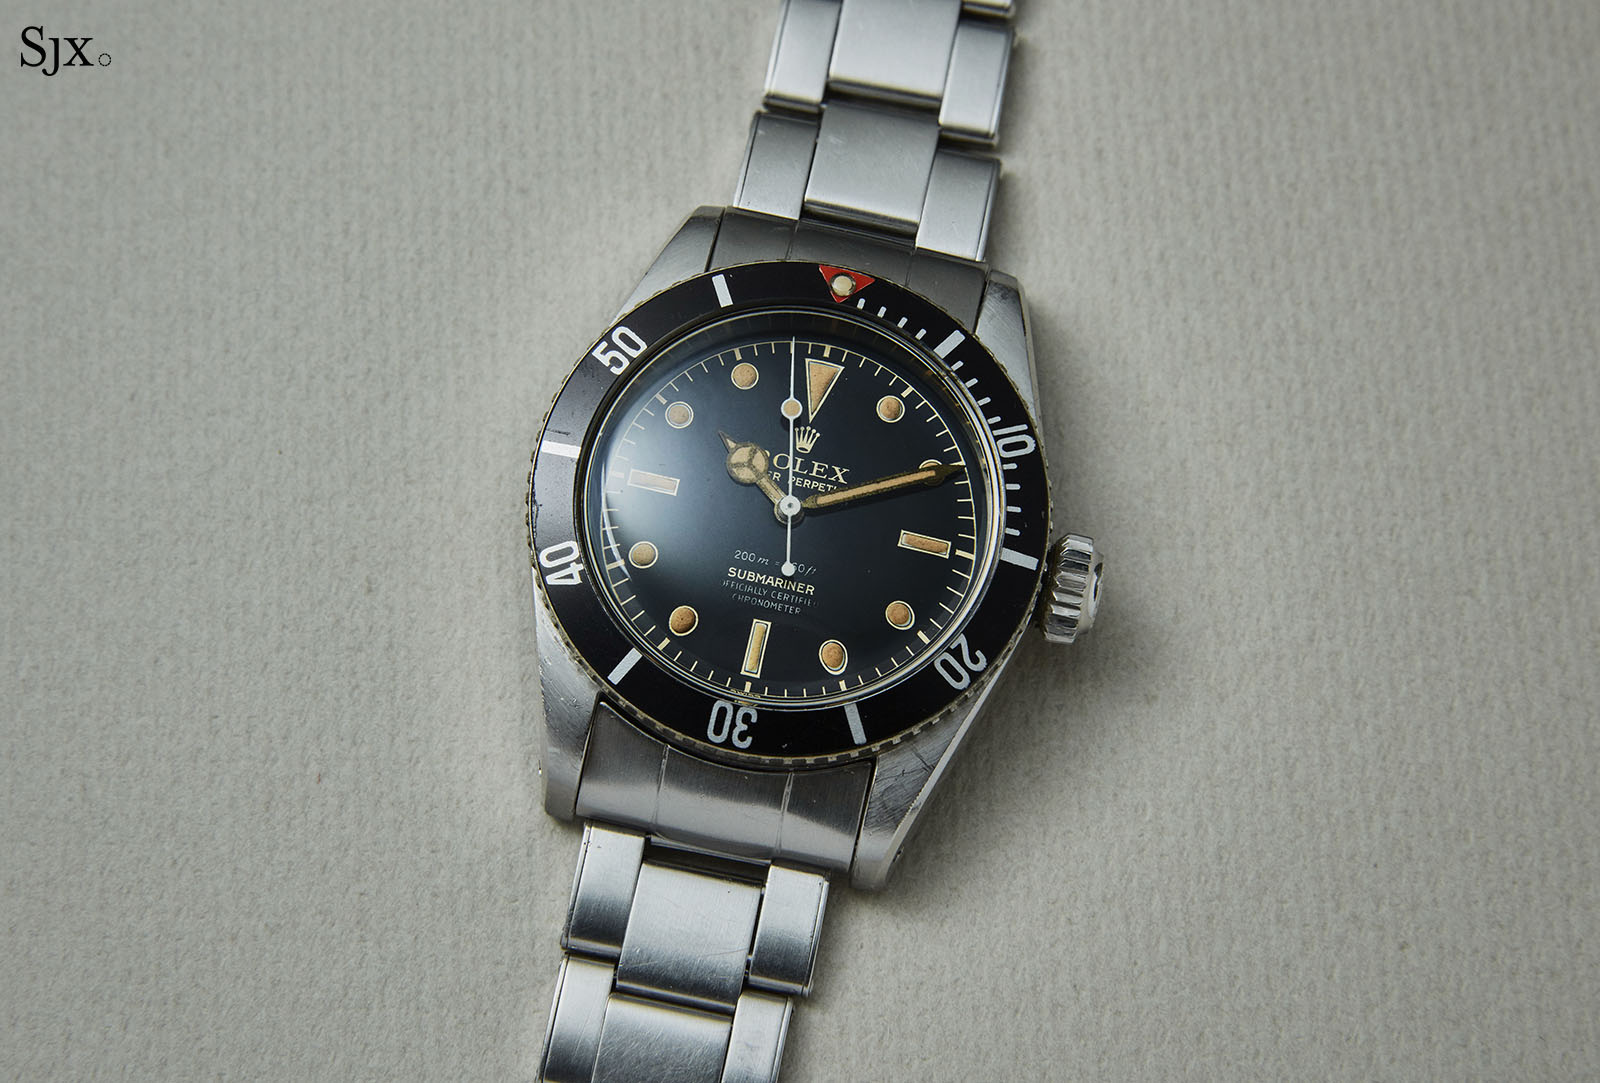 Rolex Submariner ref. 6538 Big Crown